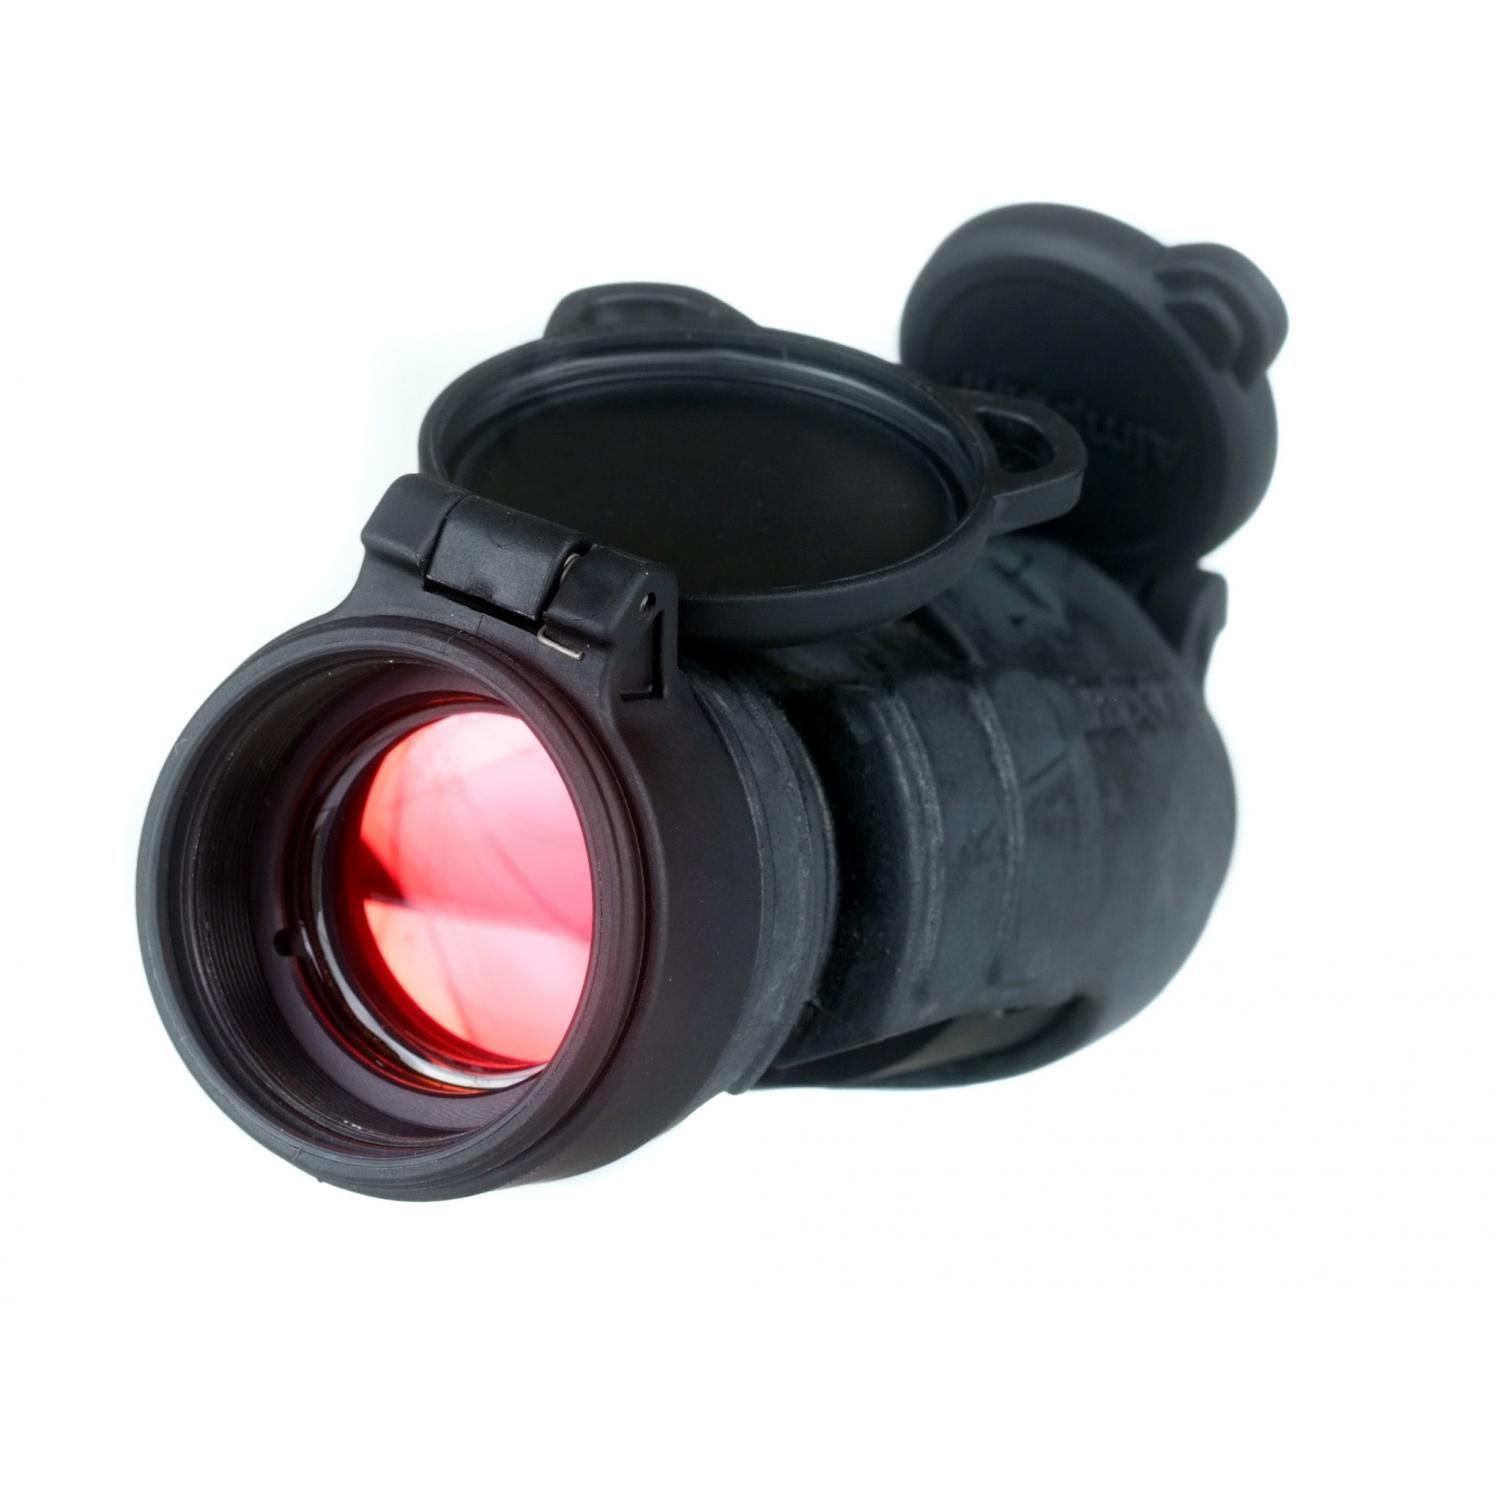 Aimpoint Compml3 Red Dot 2 Moa Sight Riflescope - Black - 11416